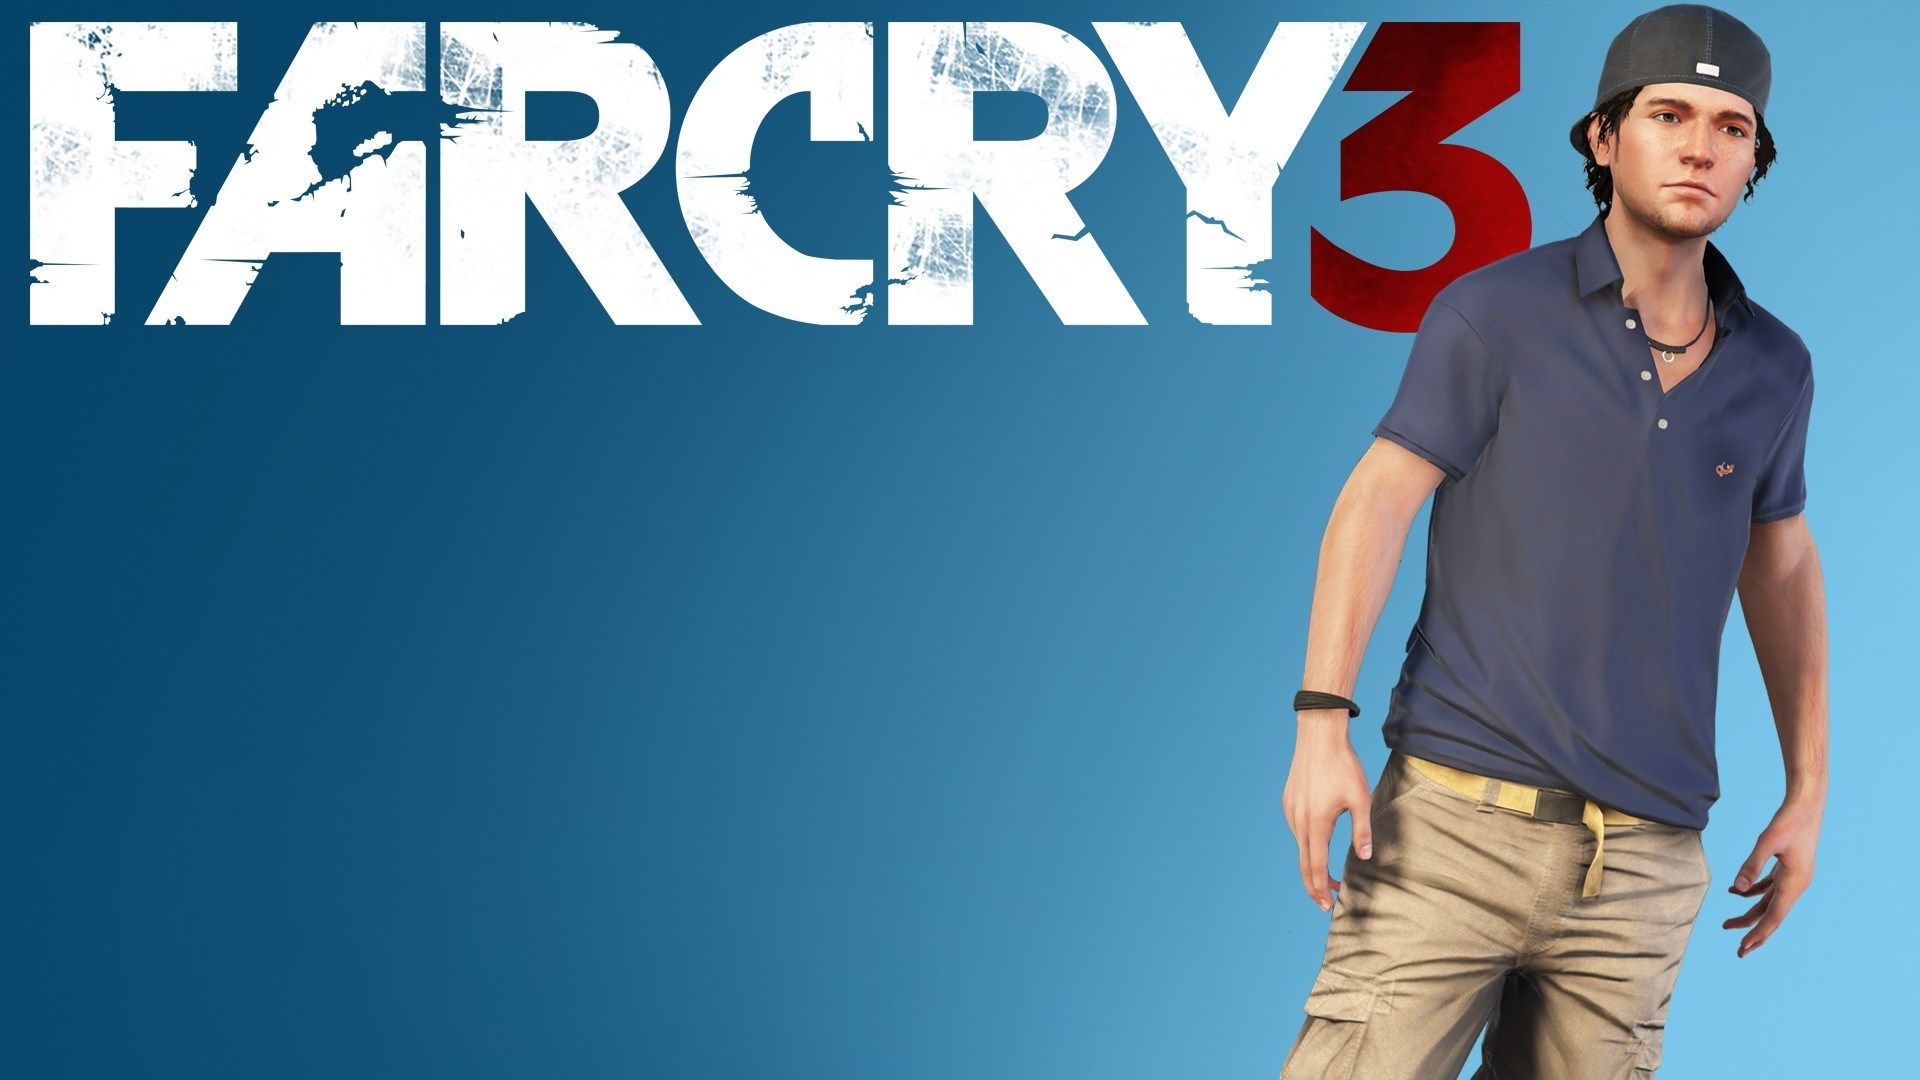 Talbot Gill - computer wallpaper for Far Cry 3 - 1920x1080 px